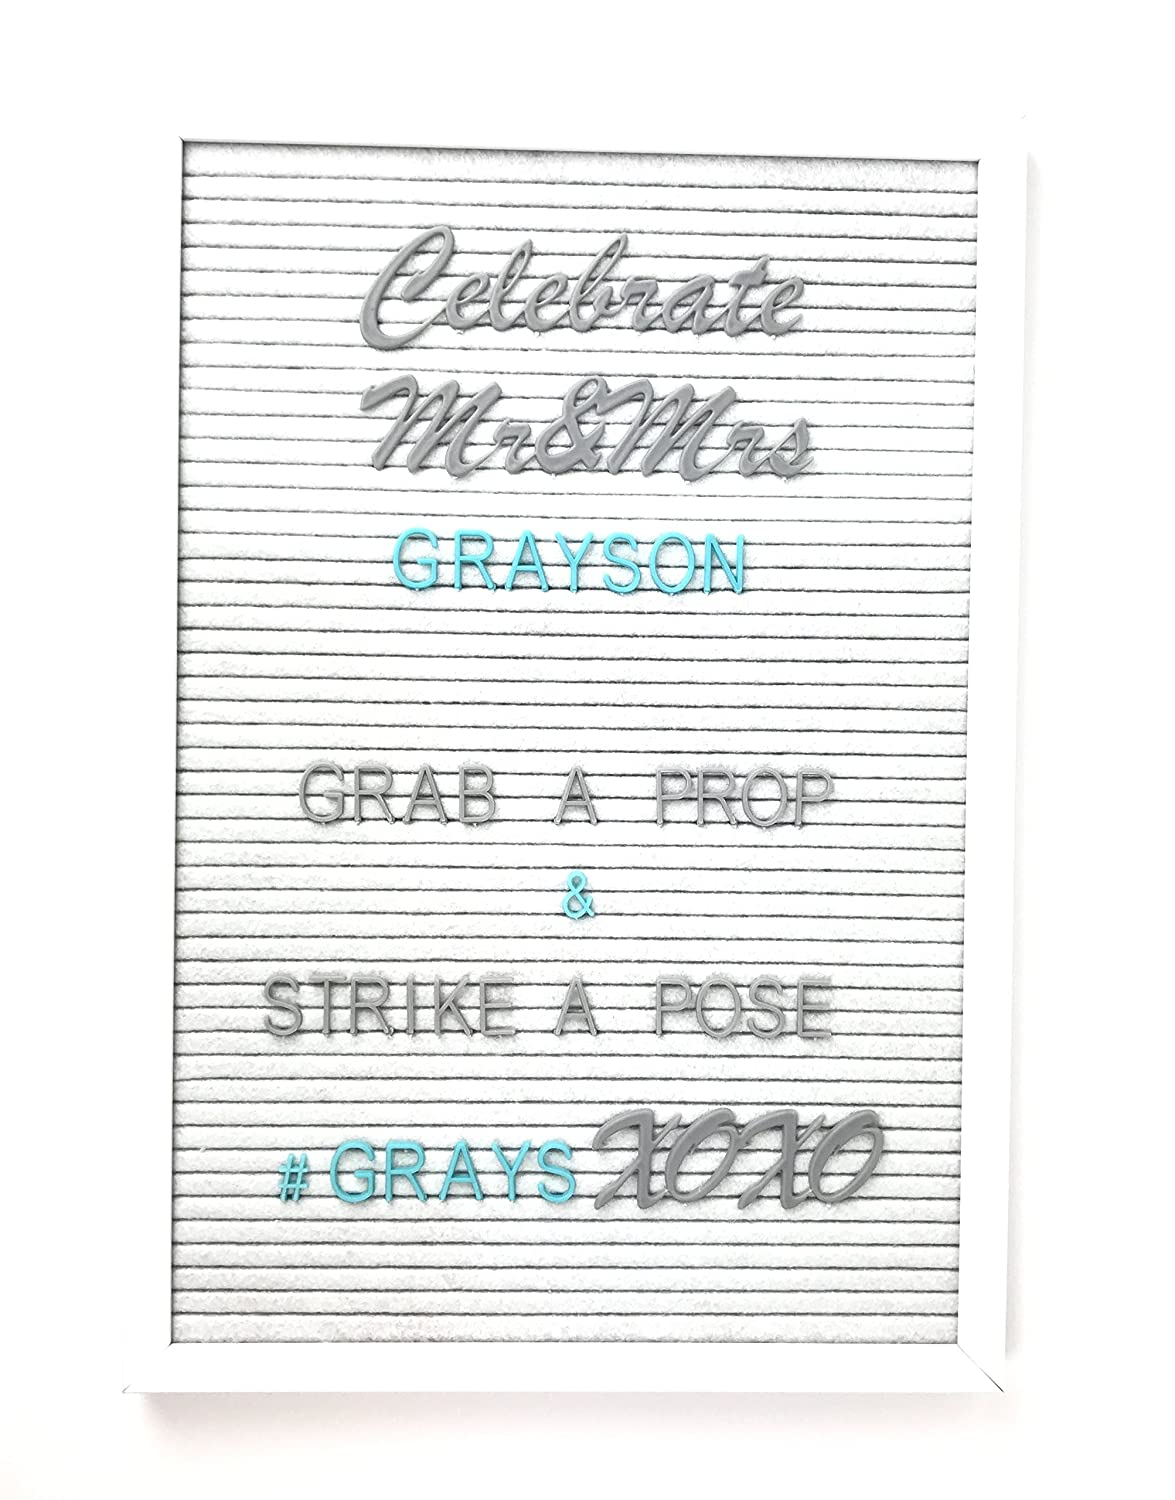 GREY & AQUA PREMIUM COLORED HELVETICA & BRUSH SCRIPT MT CURSIVE LETTERS for a felt vintage style board - 290 changeable accessory characters including the alphabet, symbols, shapes, numbers and words. Leisure Art